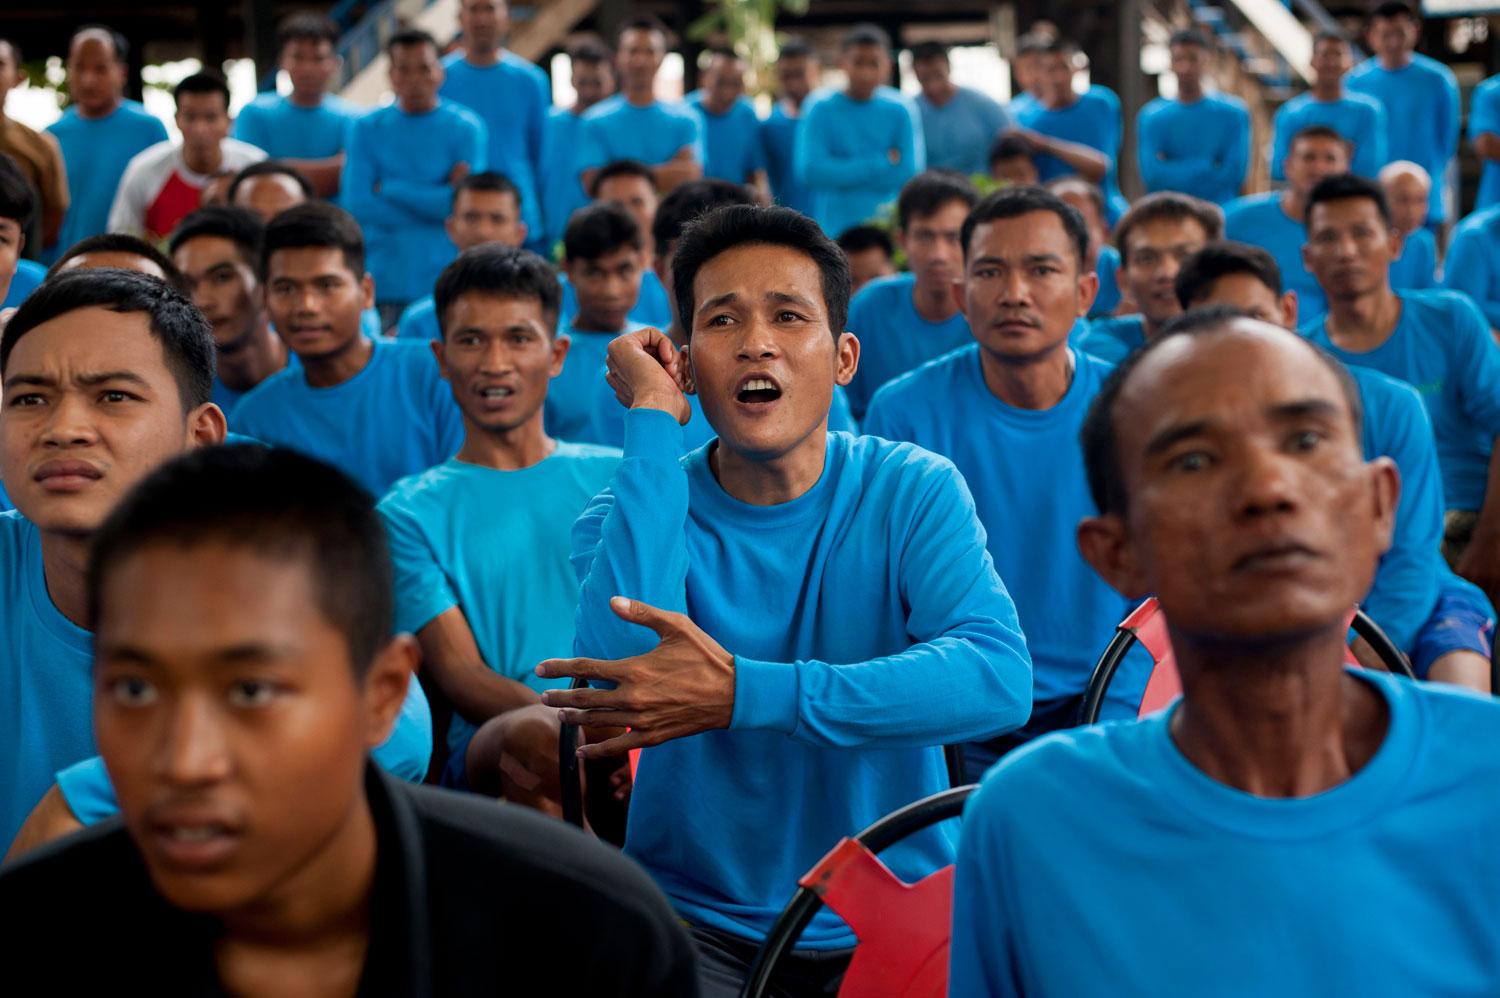 Inmates react during a Muay Thai fight at Klong Pai prison on July 12, 2014 in Nakhon Ratchasima, Thailand.